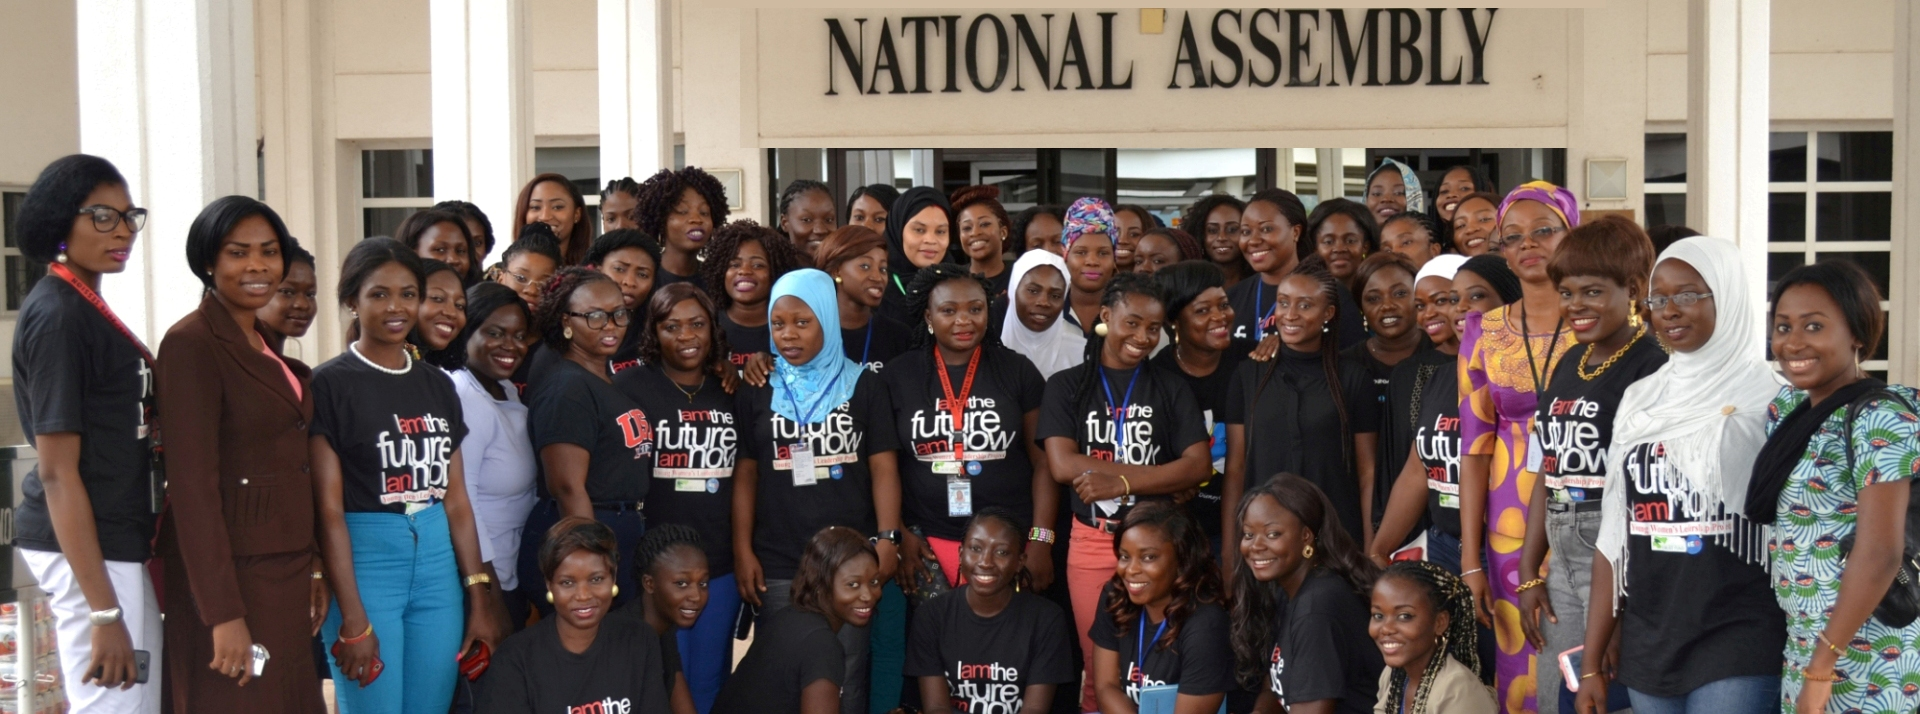 Learning Visit to National Assembly